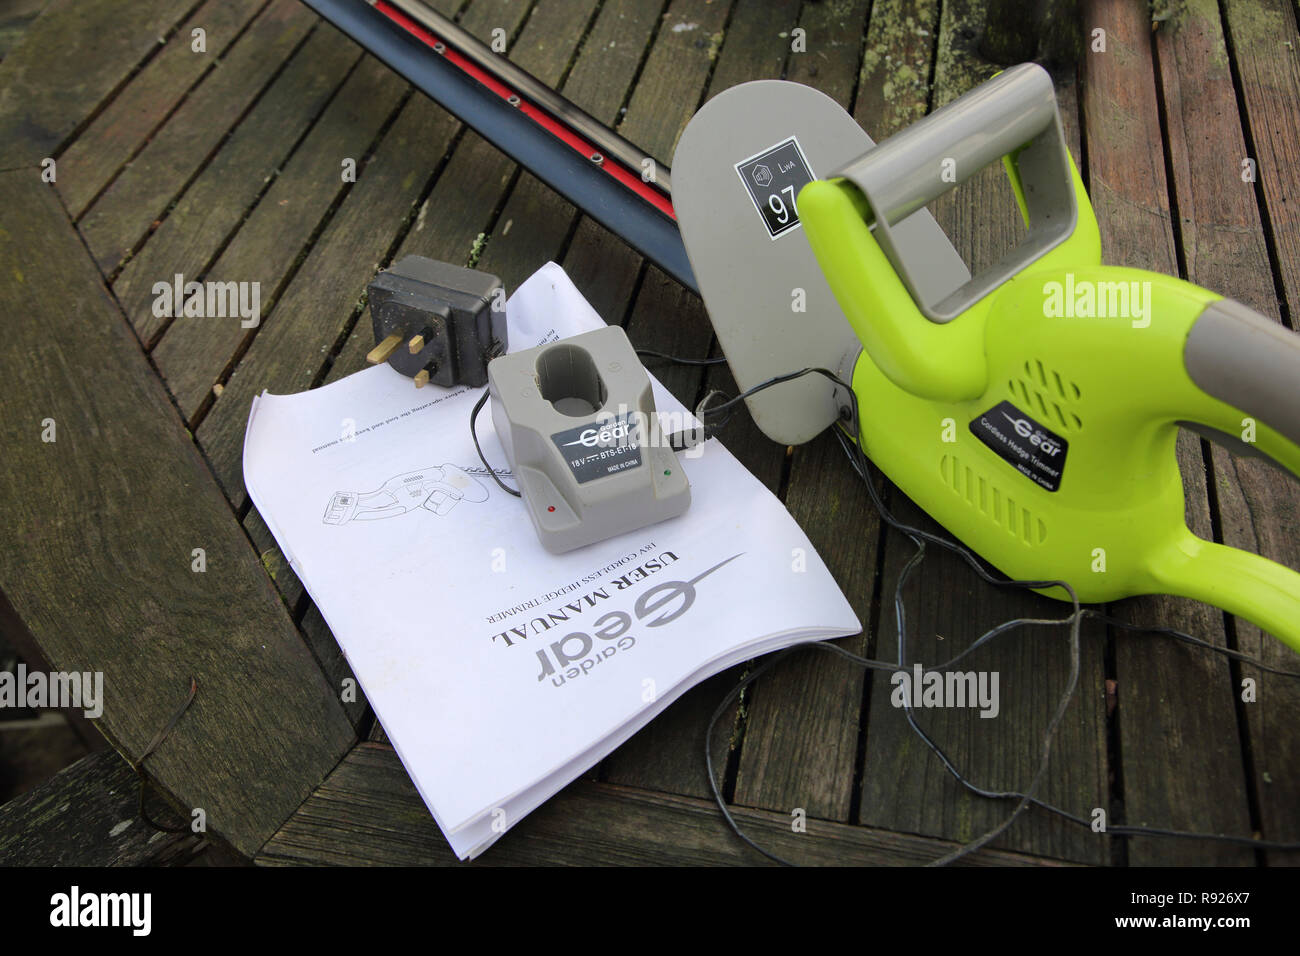 Garden Gear Cordless Hedge Trimmer Charger and User Manual - Stock Image